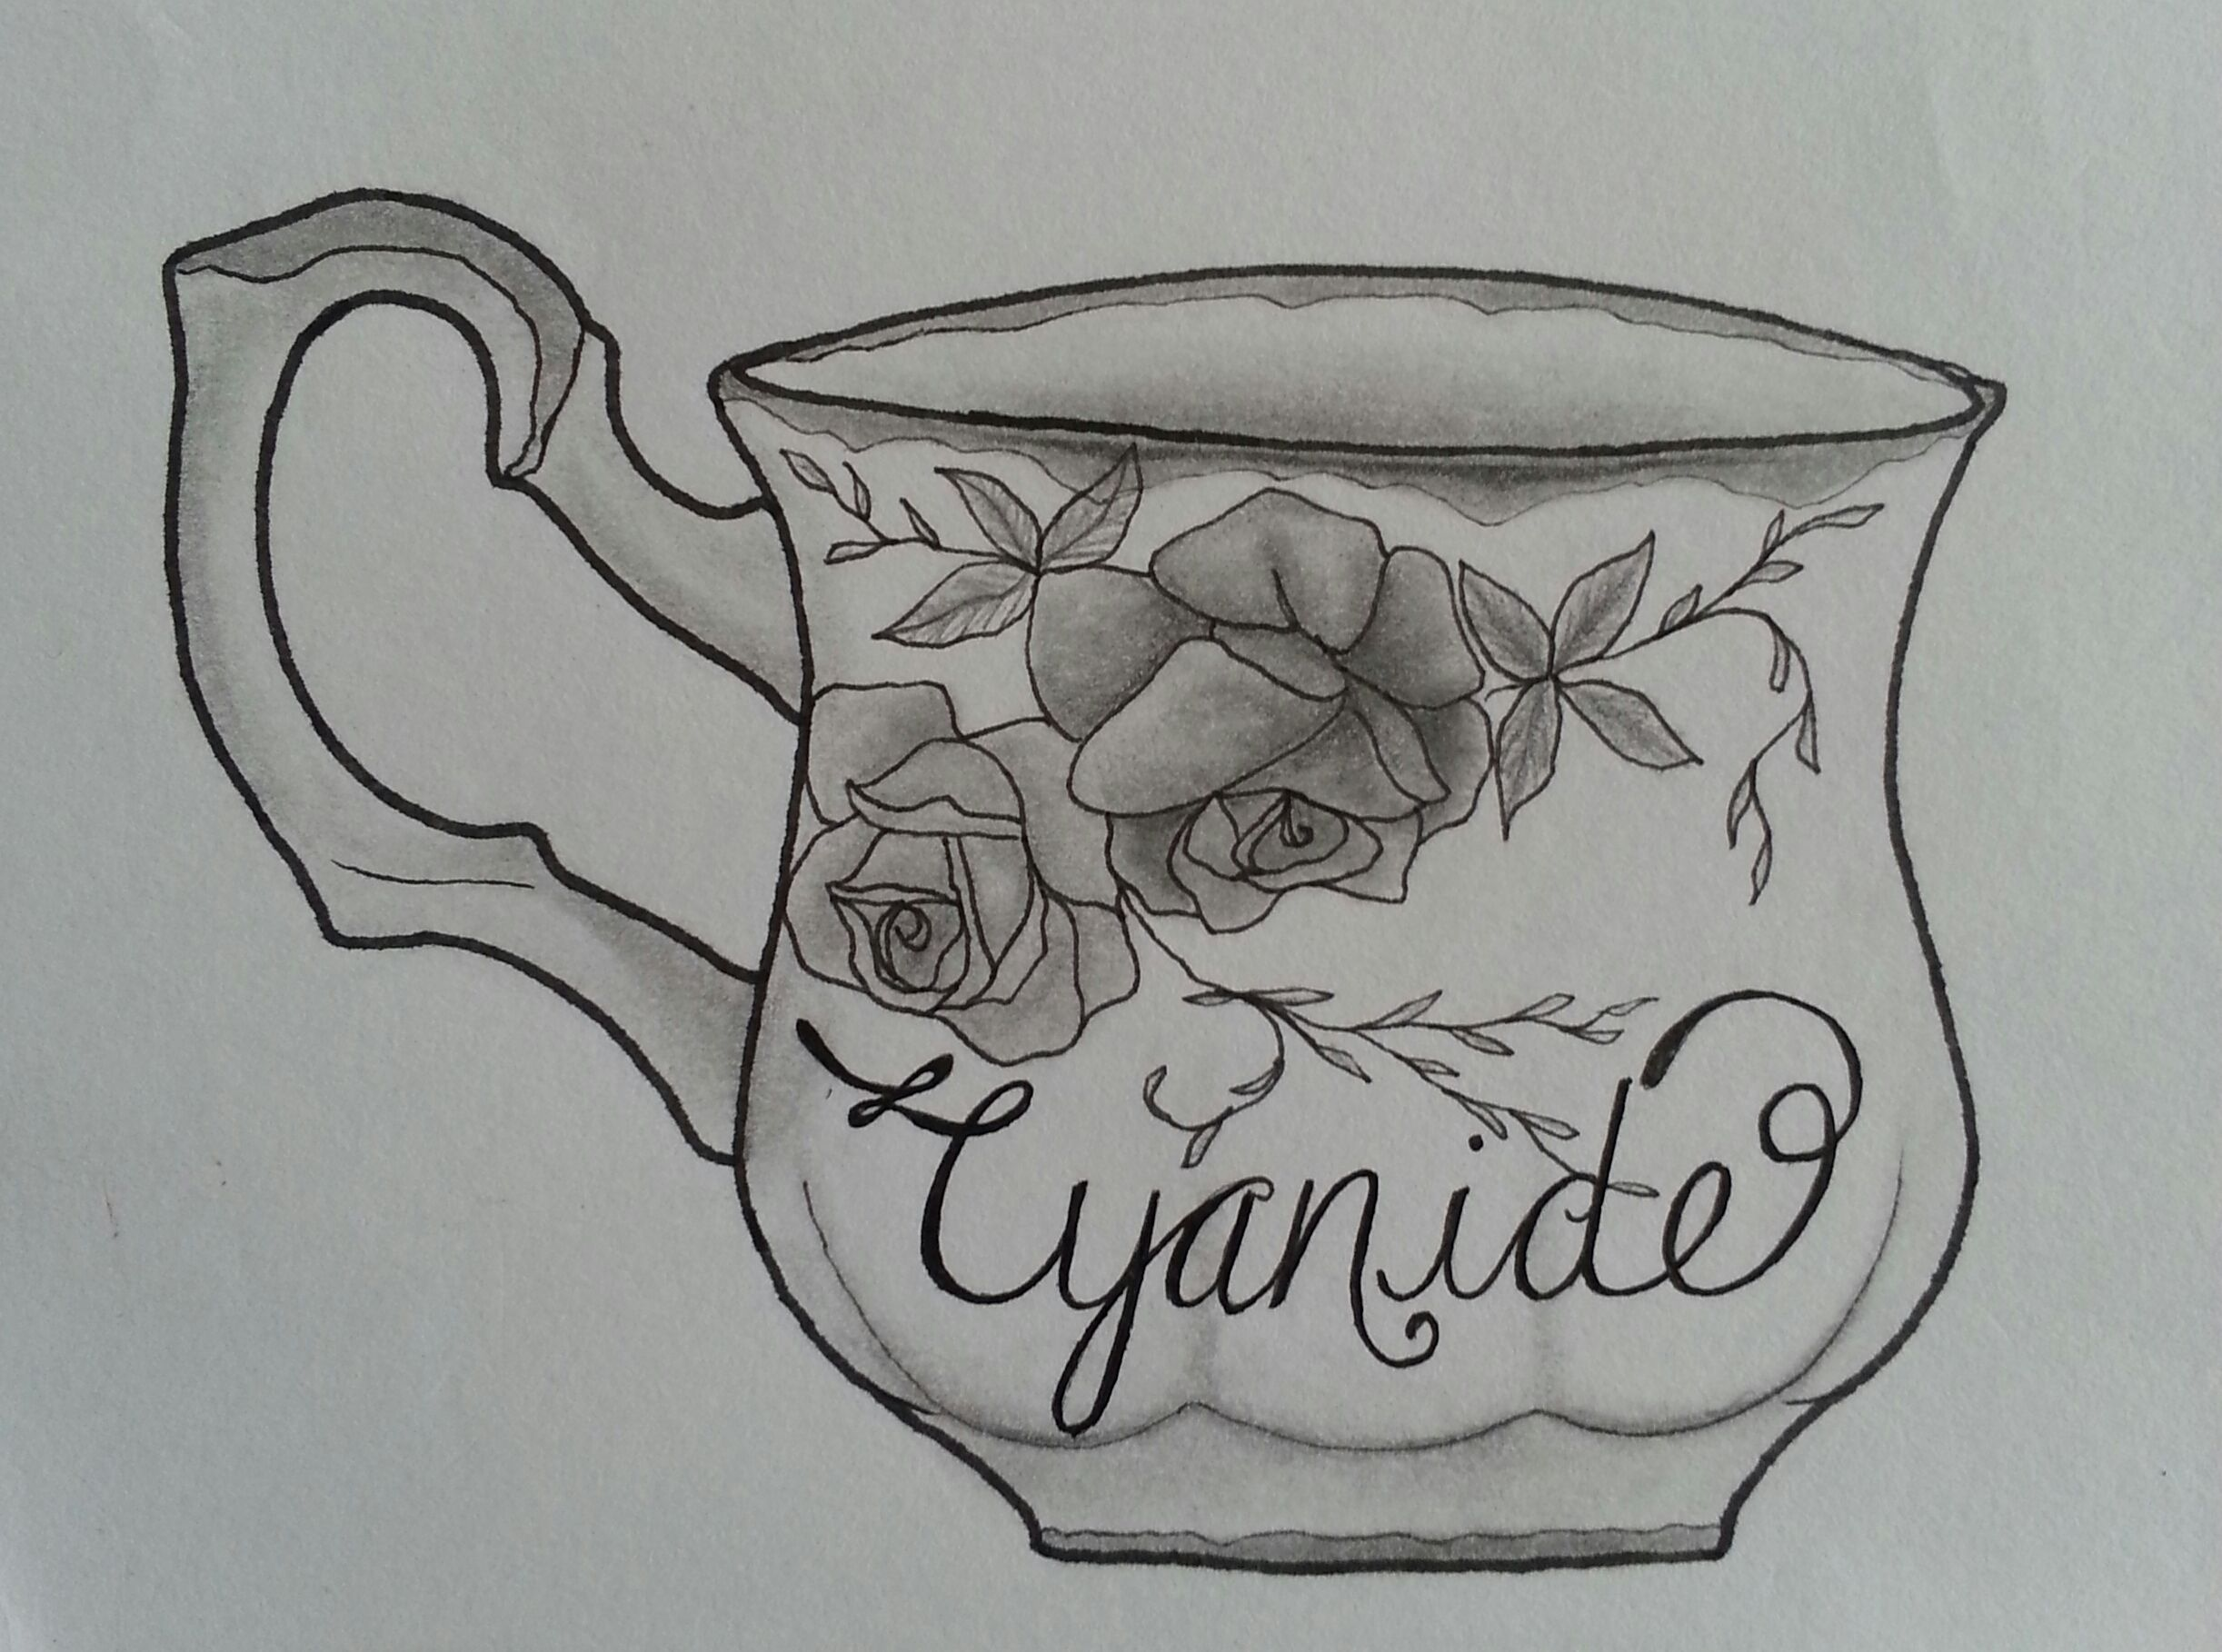 Quot And A Cute Little Cup Of Cyanide Quot Tattoo Style